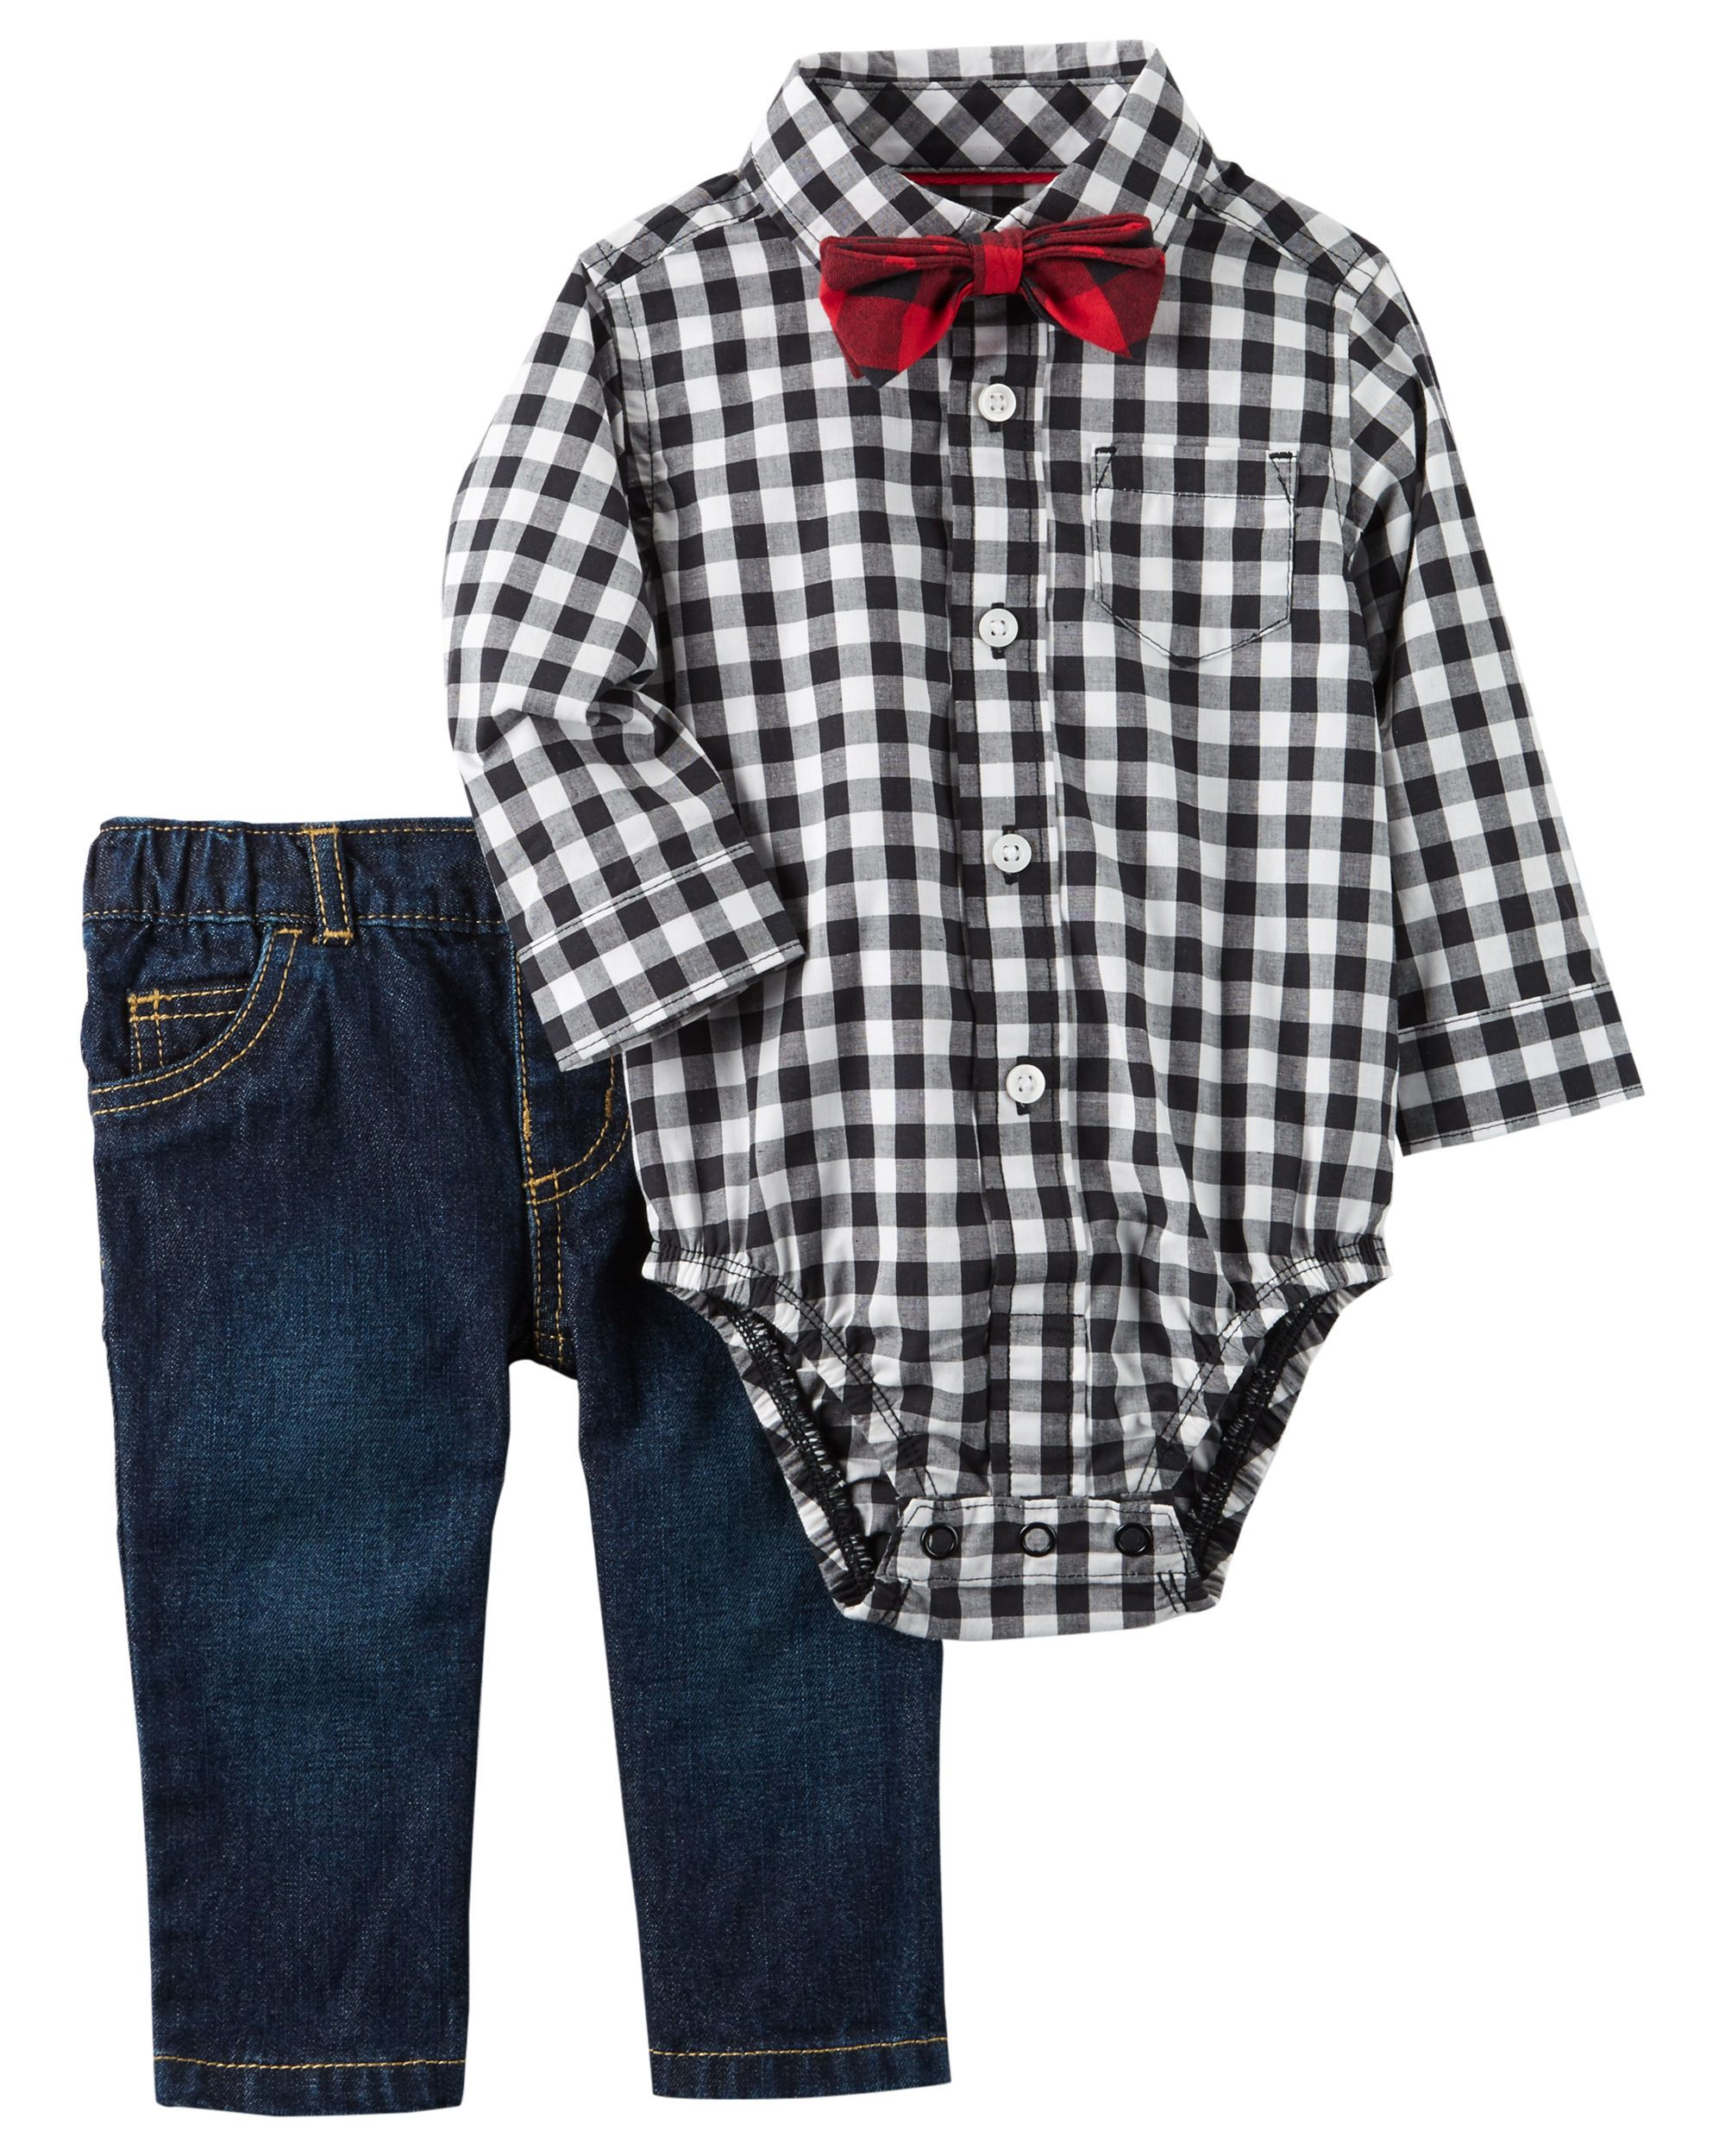 Flannel shirt for baby boy  Heus holidayready in a crisp buttonfront bodysuit and coordinating